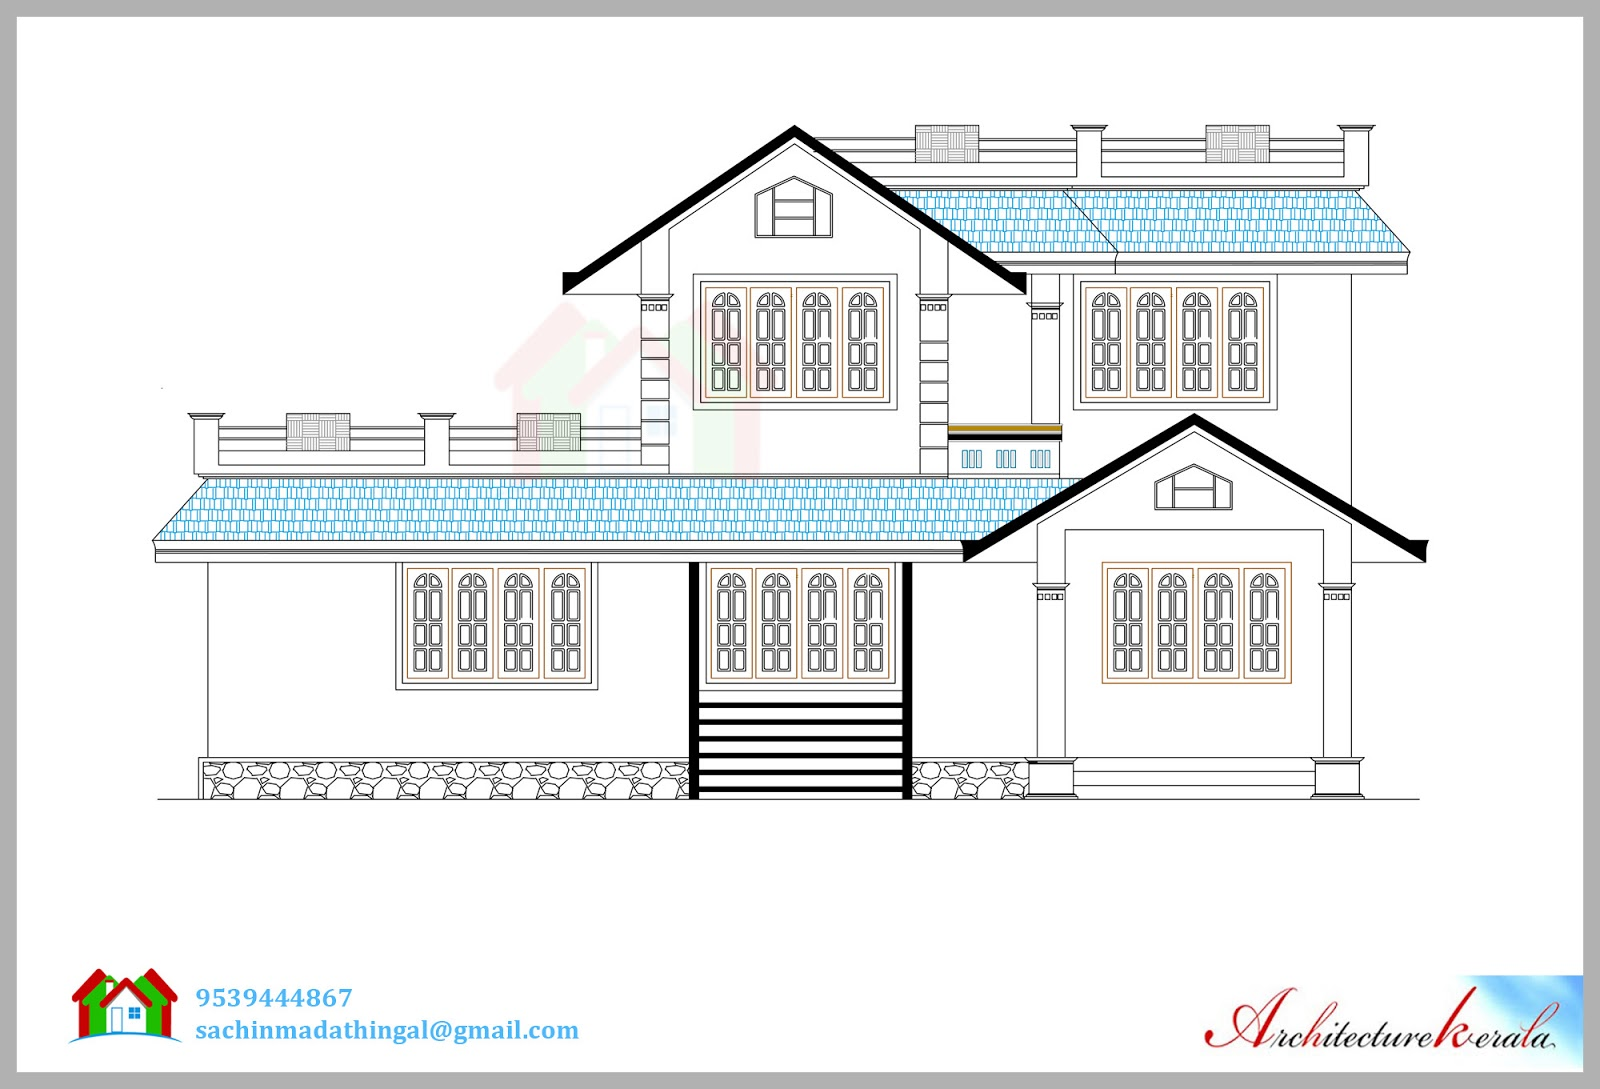 Building Elevation Plan : Square feet house plan and its d elevation